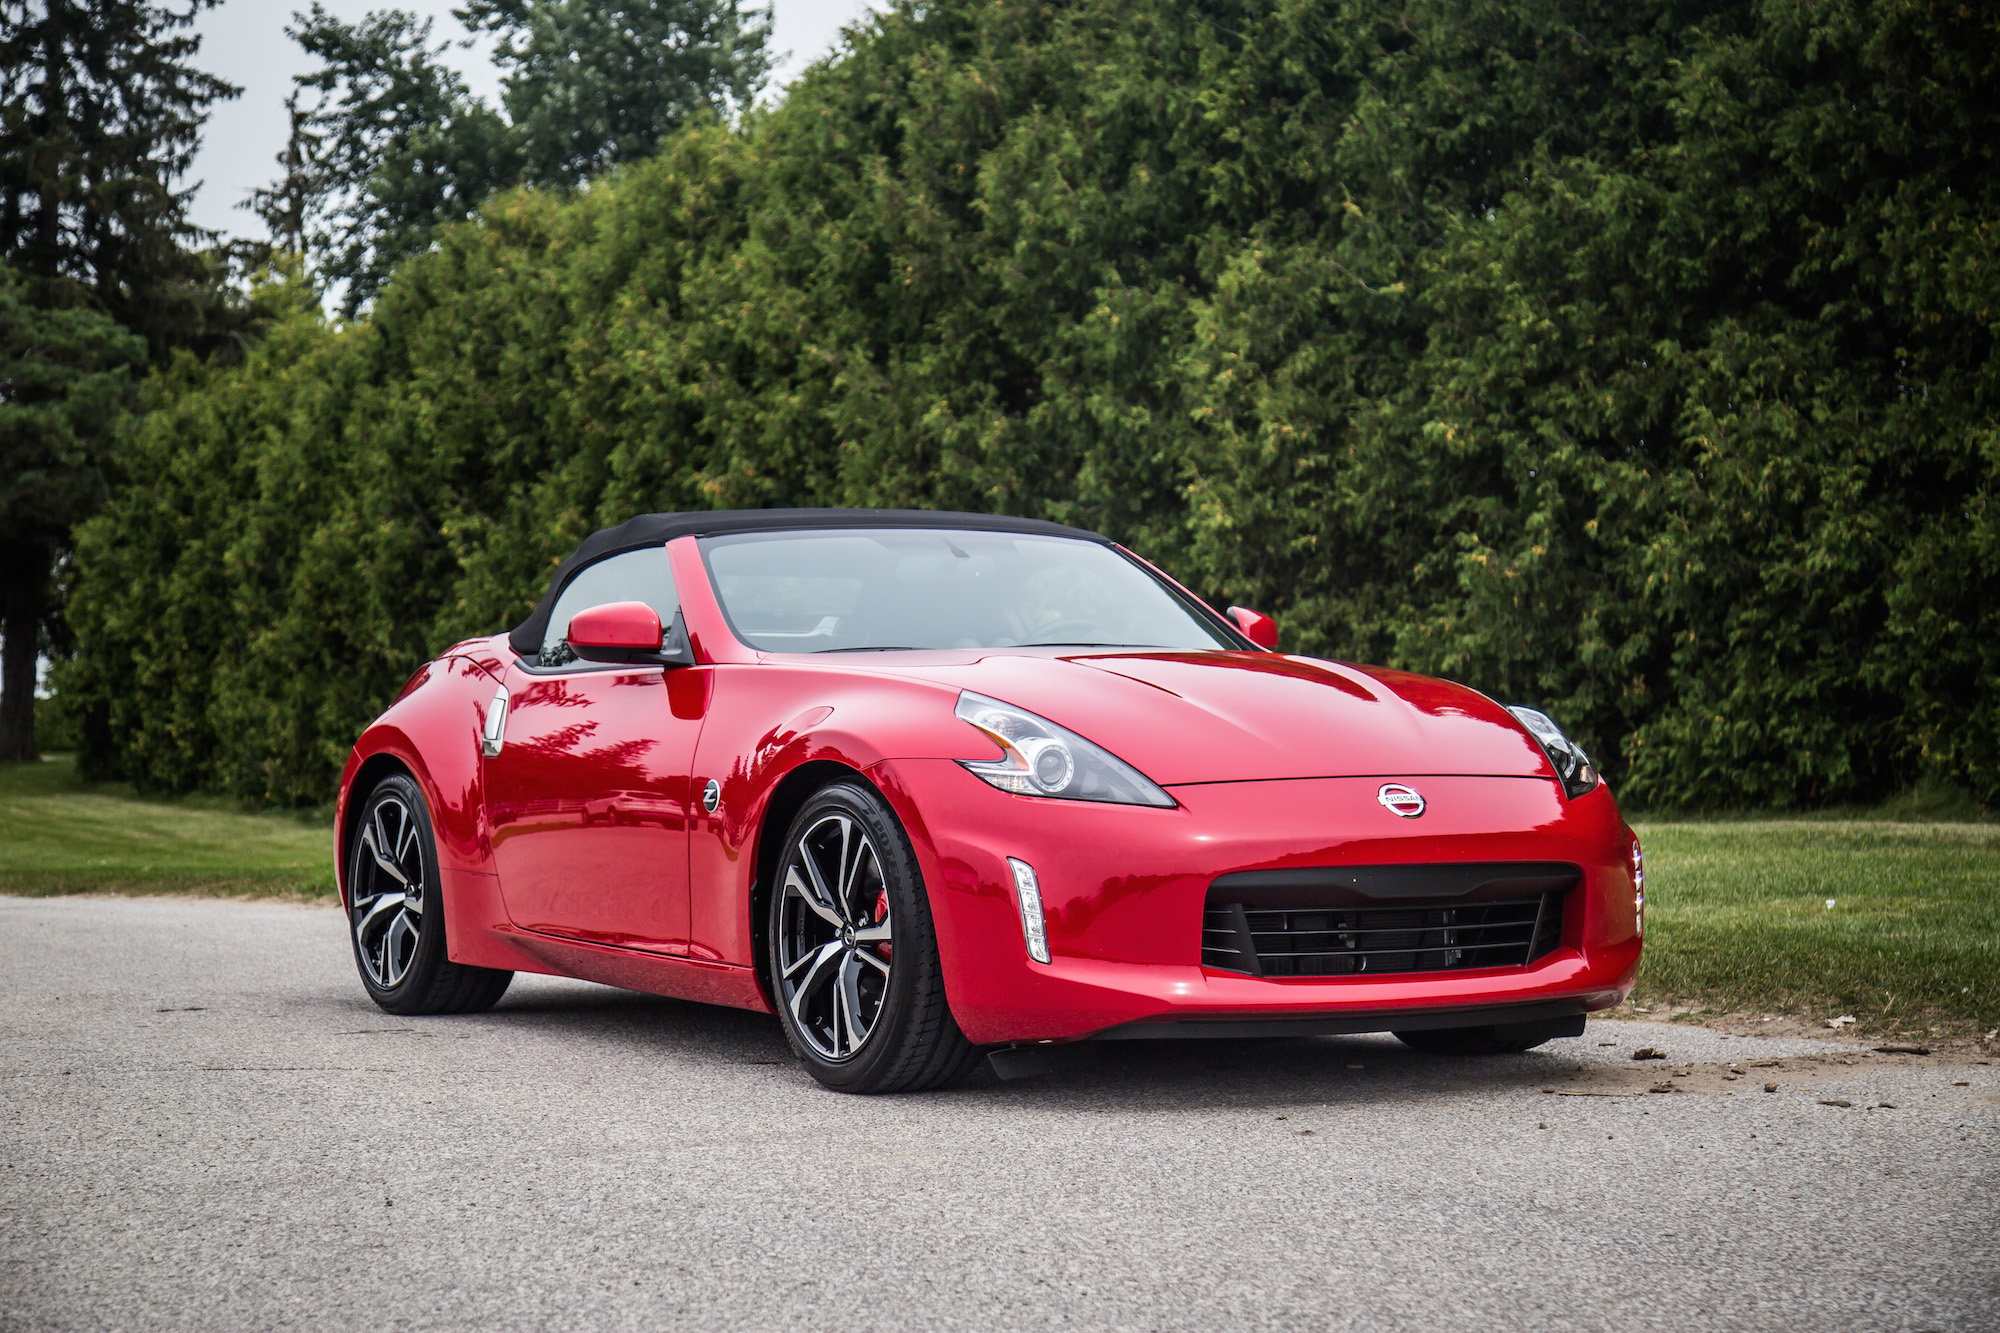 review 2018 nissan 370z roadster touring sport canadian auto review. Black Bedroom Furniture Sets. Home Design Ideas